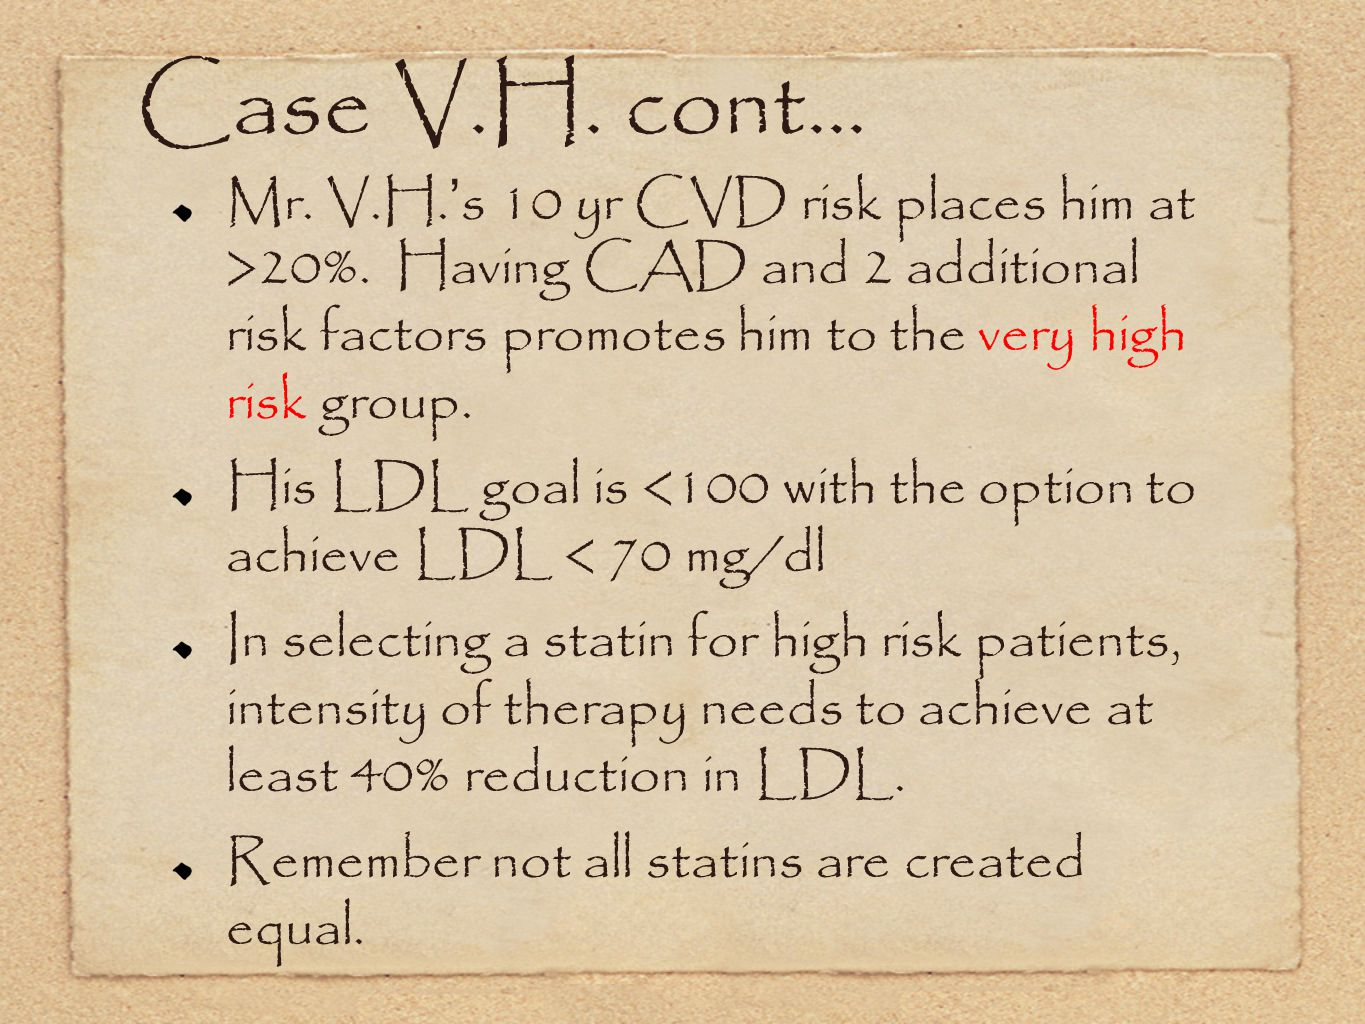 Case V.H. cont... Mr. V.H.'s 10 yr CVD risk places him at >20%. Having CAD and 2 additional risk factors promotes him to the very high risk group.